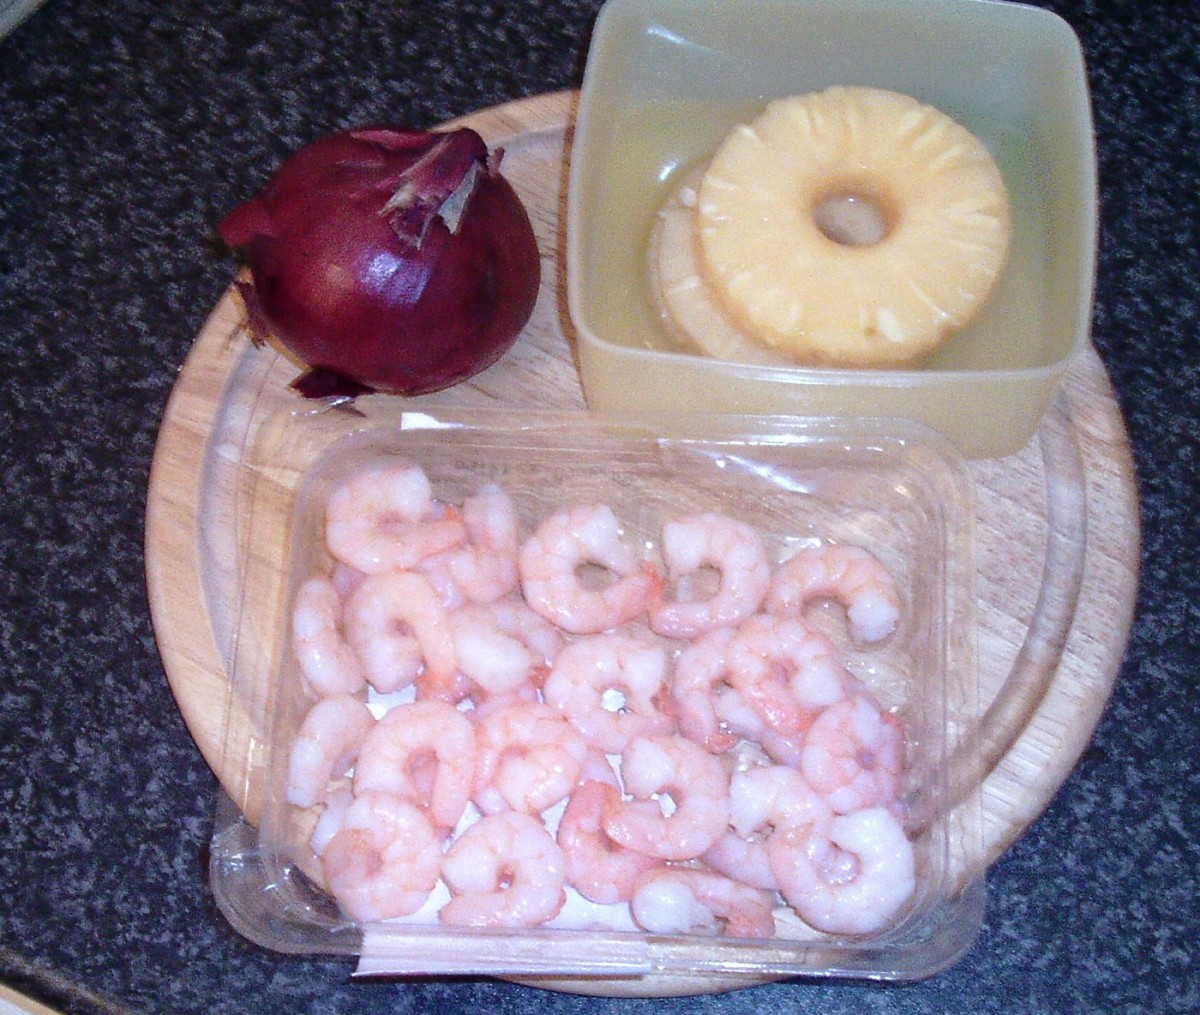 Red onion, pineapple and king prawns